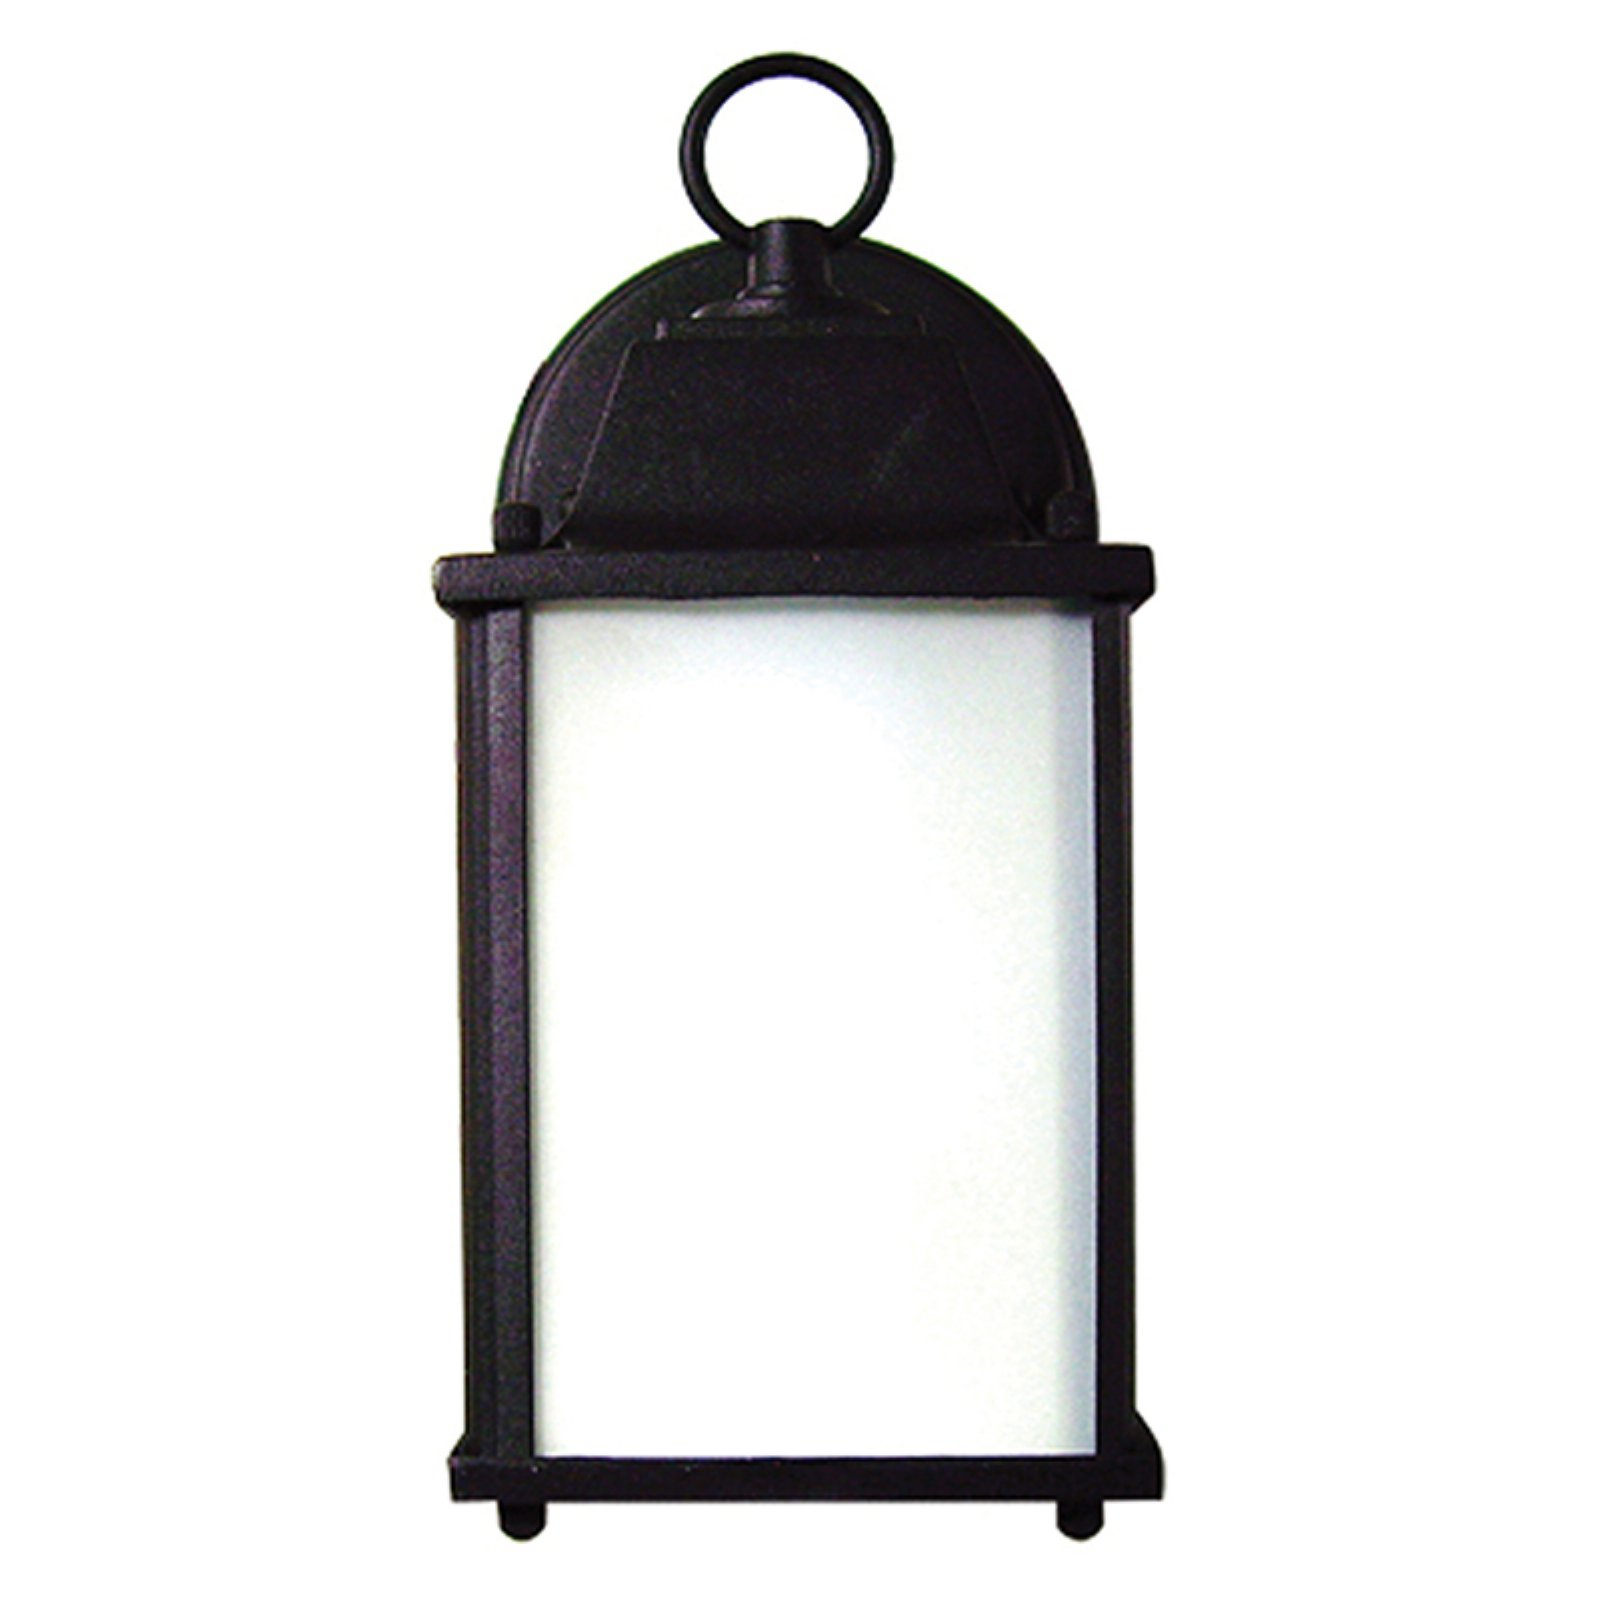 Yosemite Home Decor Tara FL5009B Outdoor Wall Light